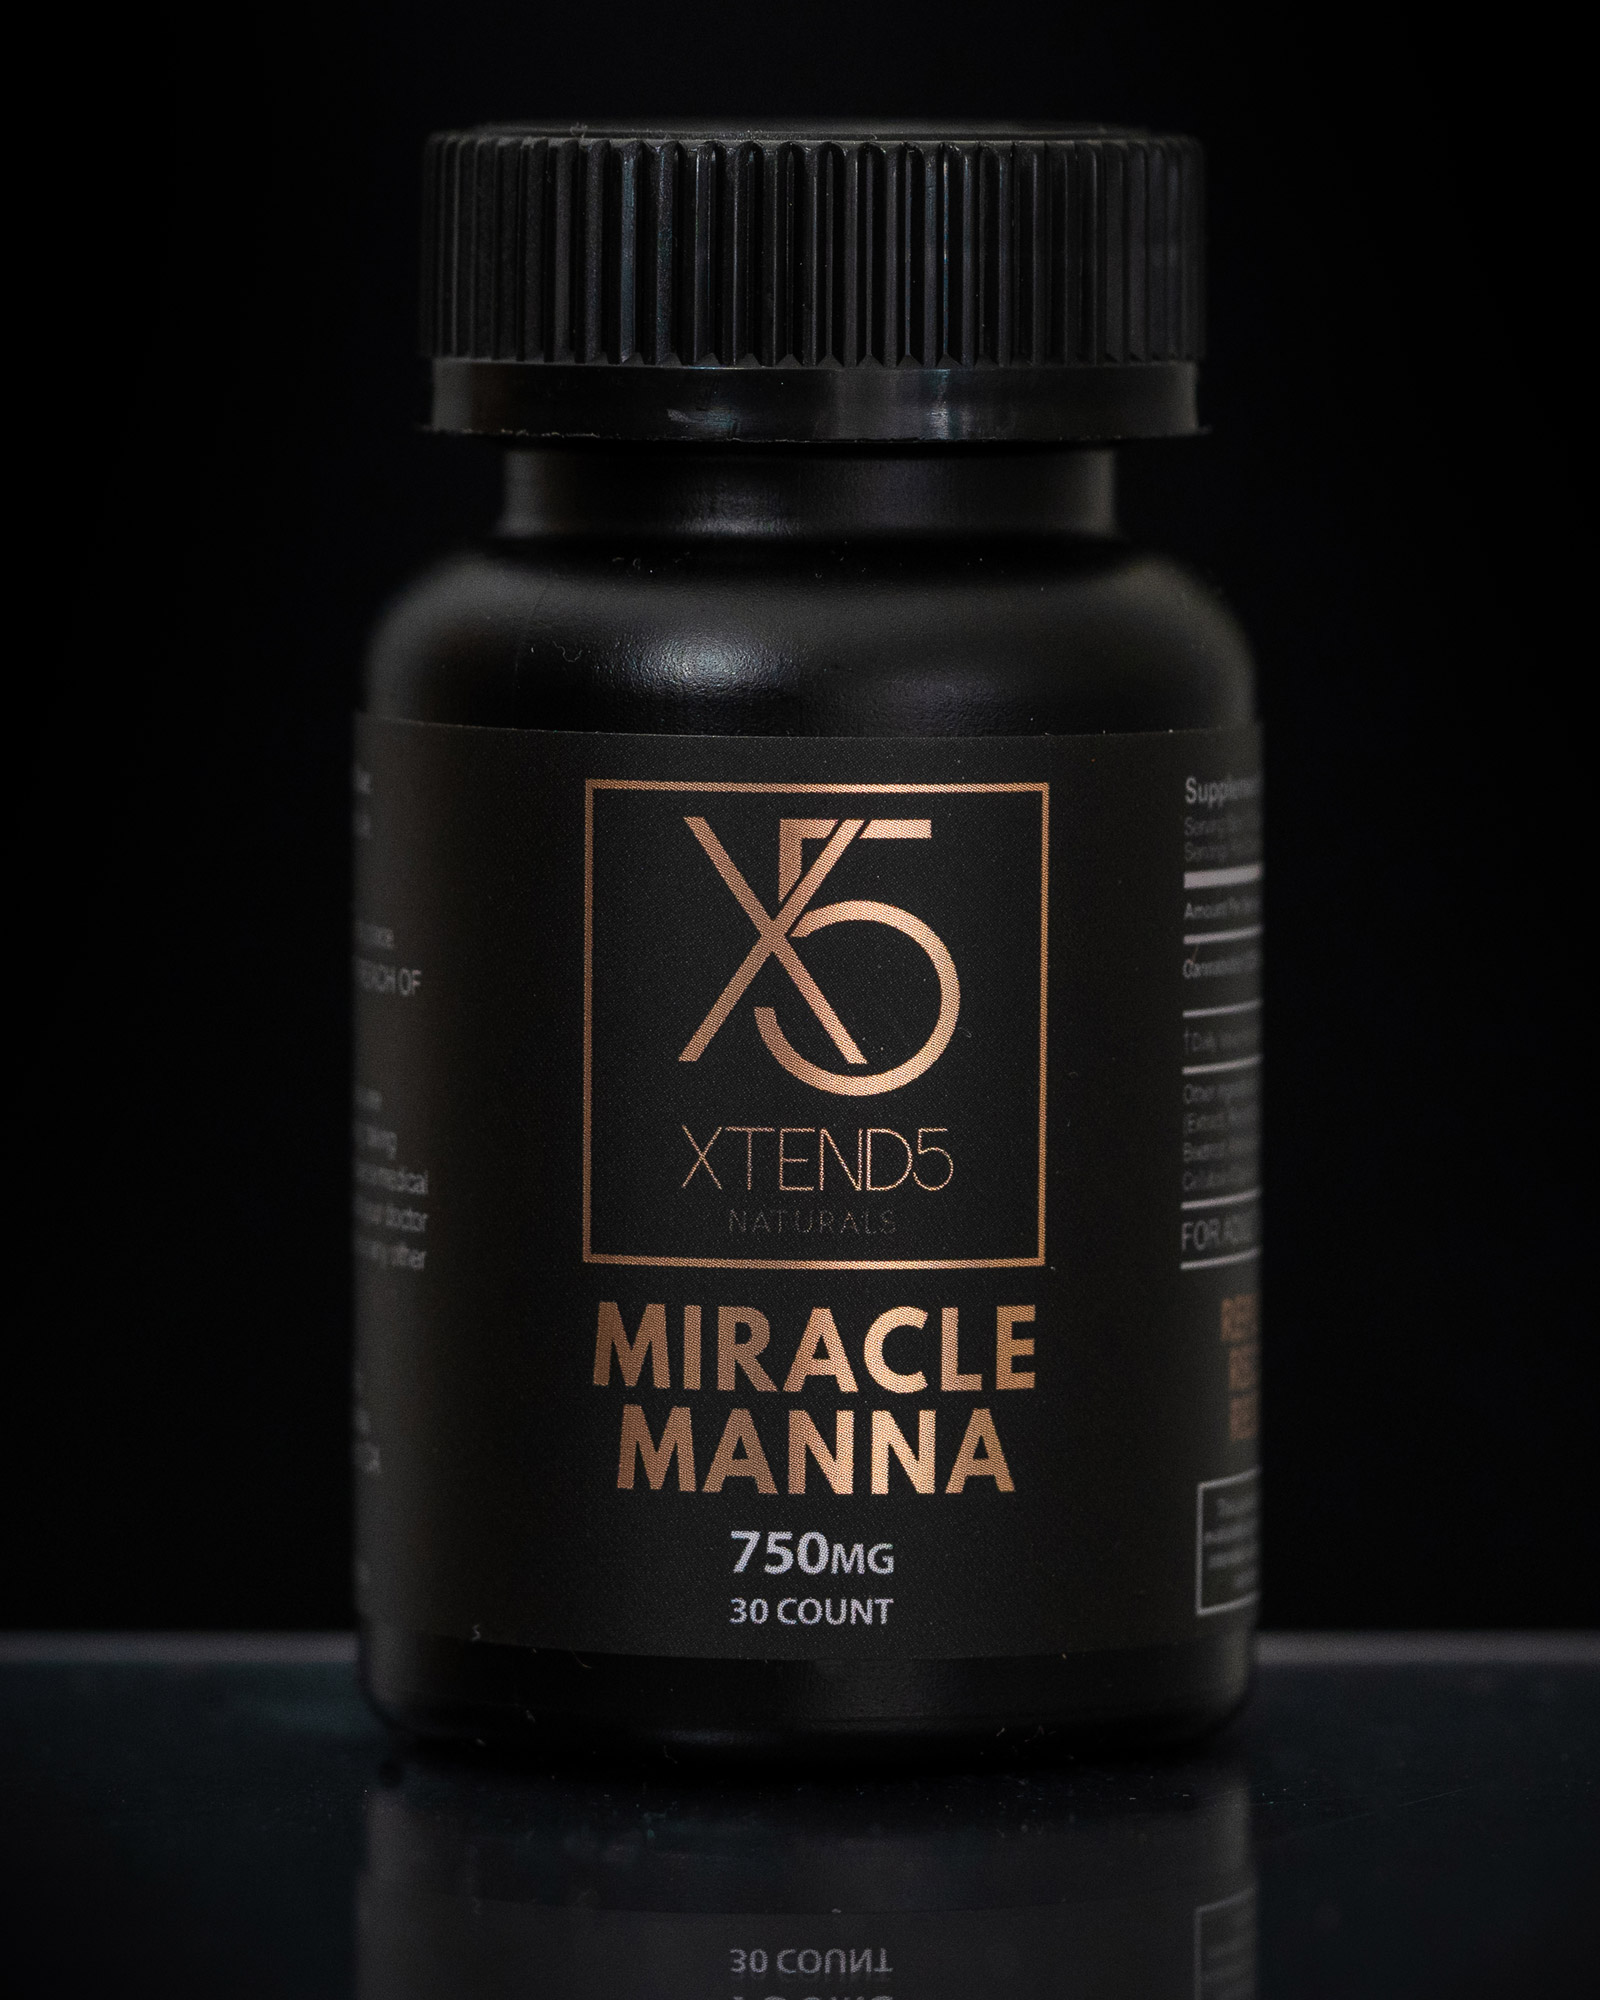 xtend5 miracle manna 750mg capsules - 750mg CBD+ Blend Capsules